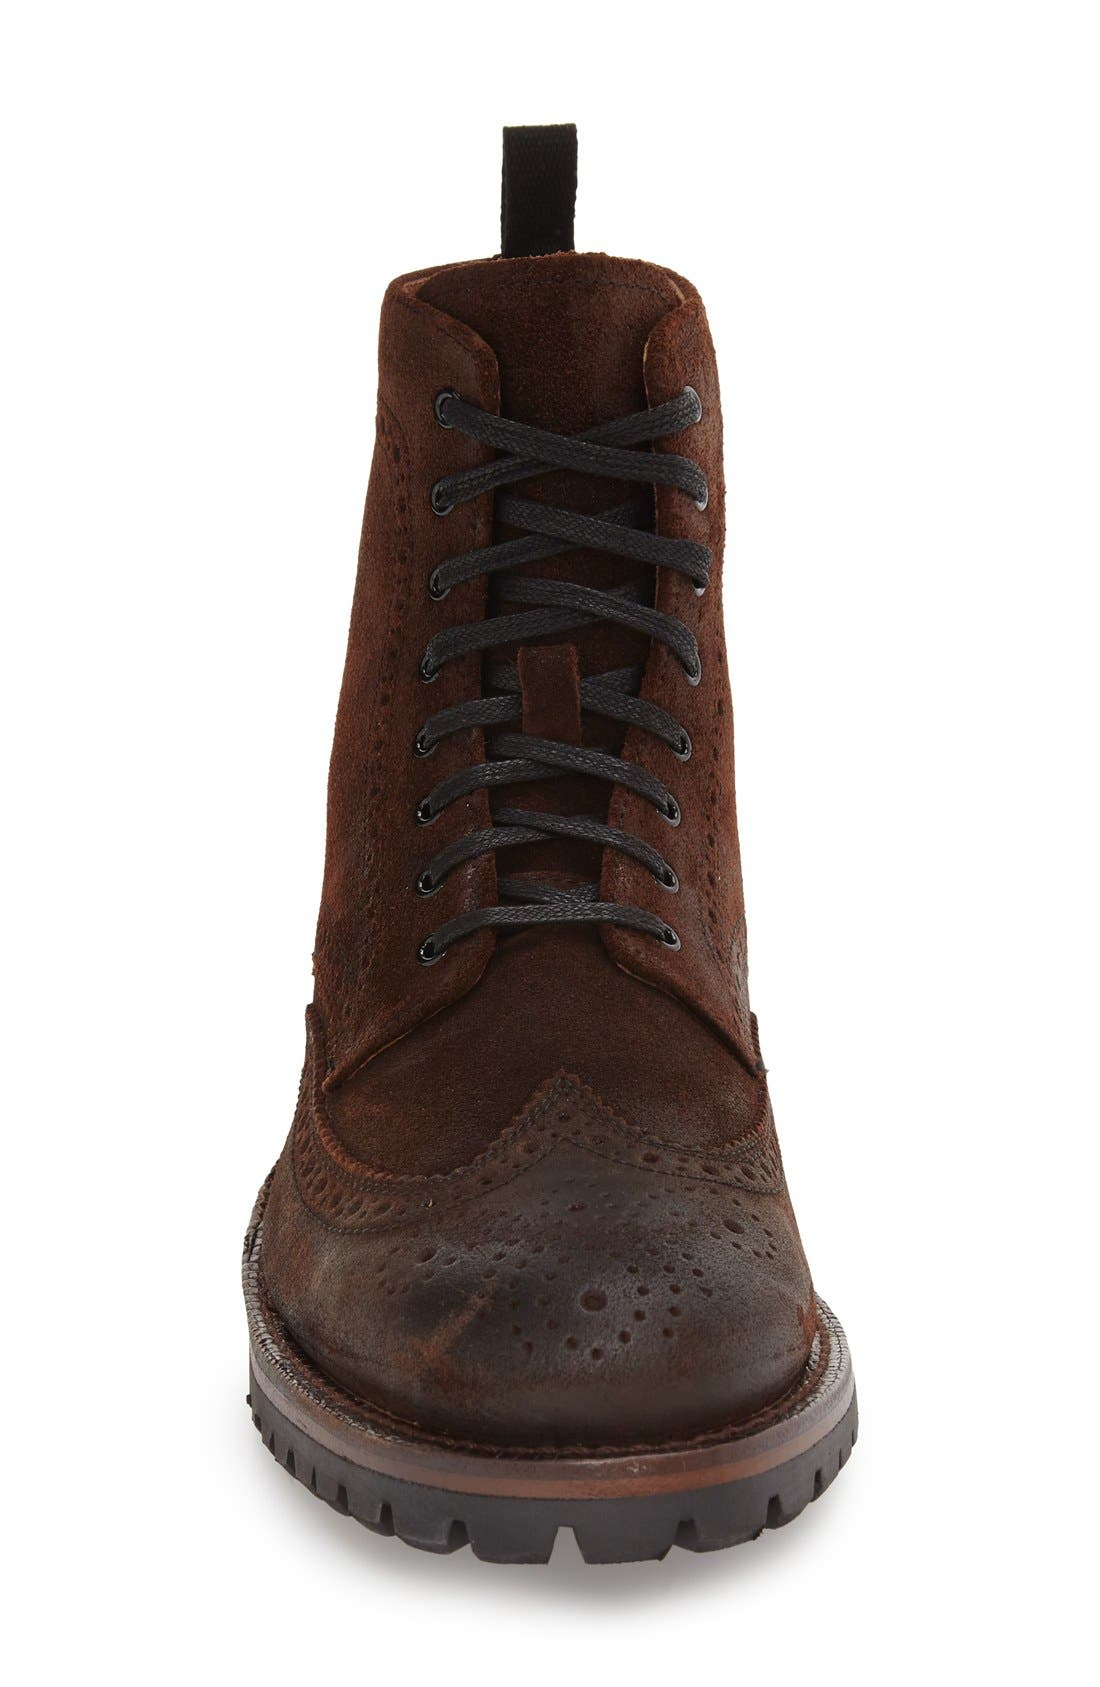 George Wingtip Boot,                             Alternate thumbnail 3, color,                             230